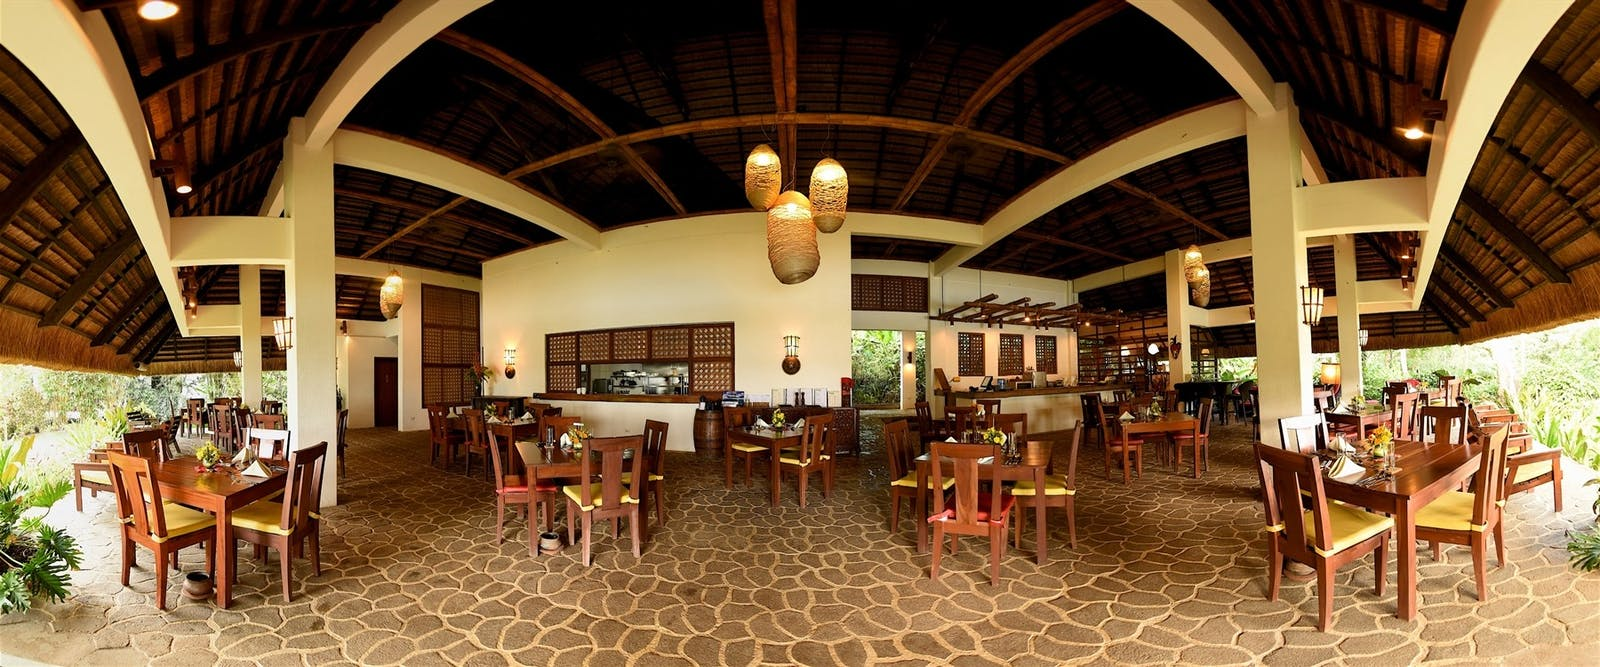 Restaurant at Amun Ini Beach Resort & Spa, Philippines